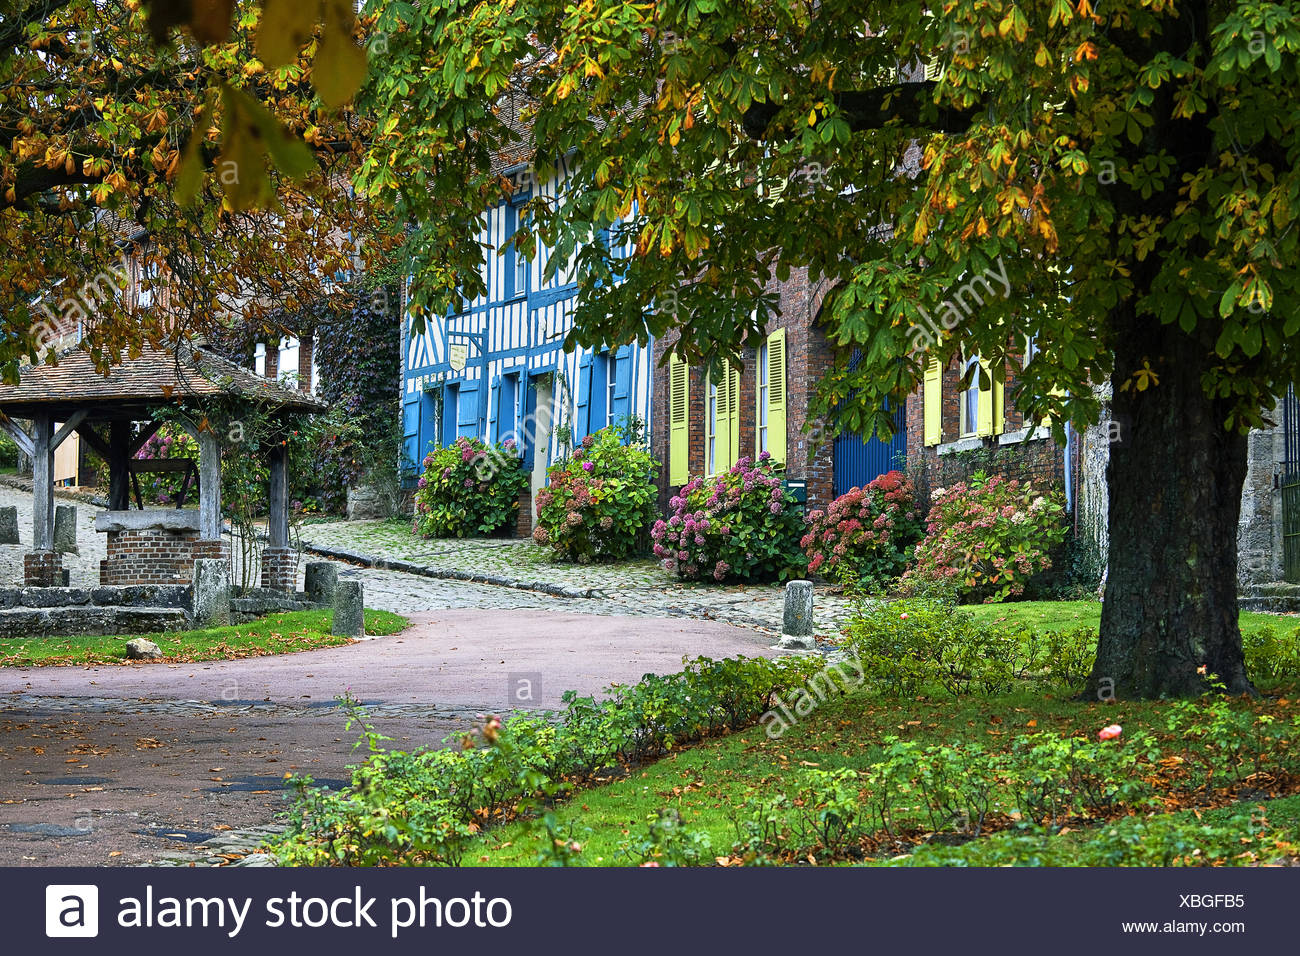 Market place, Gerberoy, Picardy, France Stock Photo